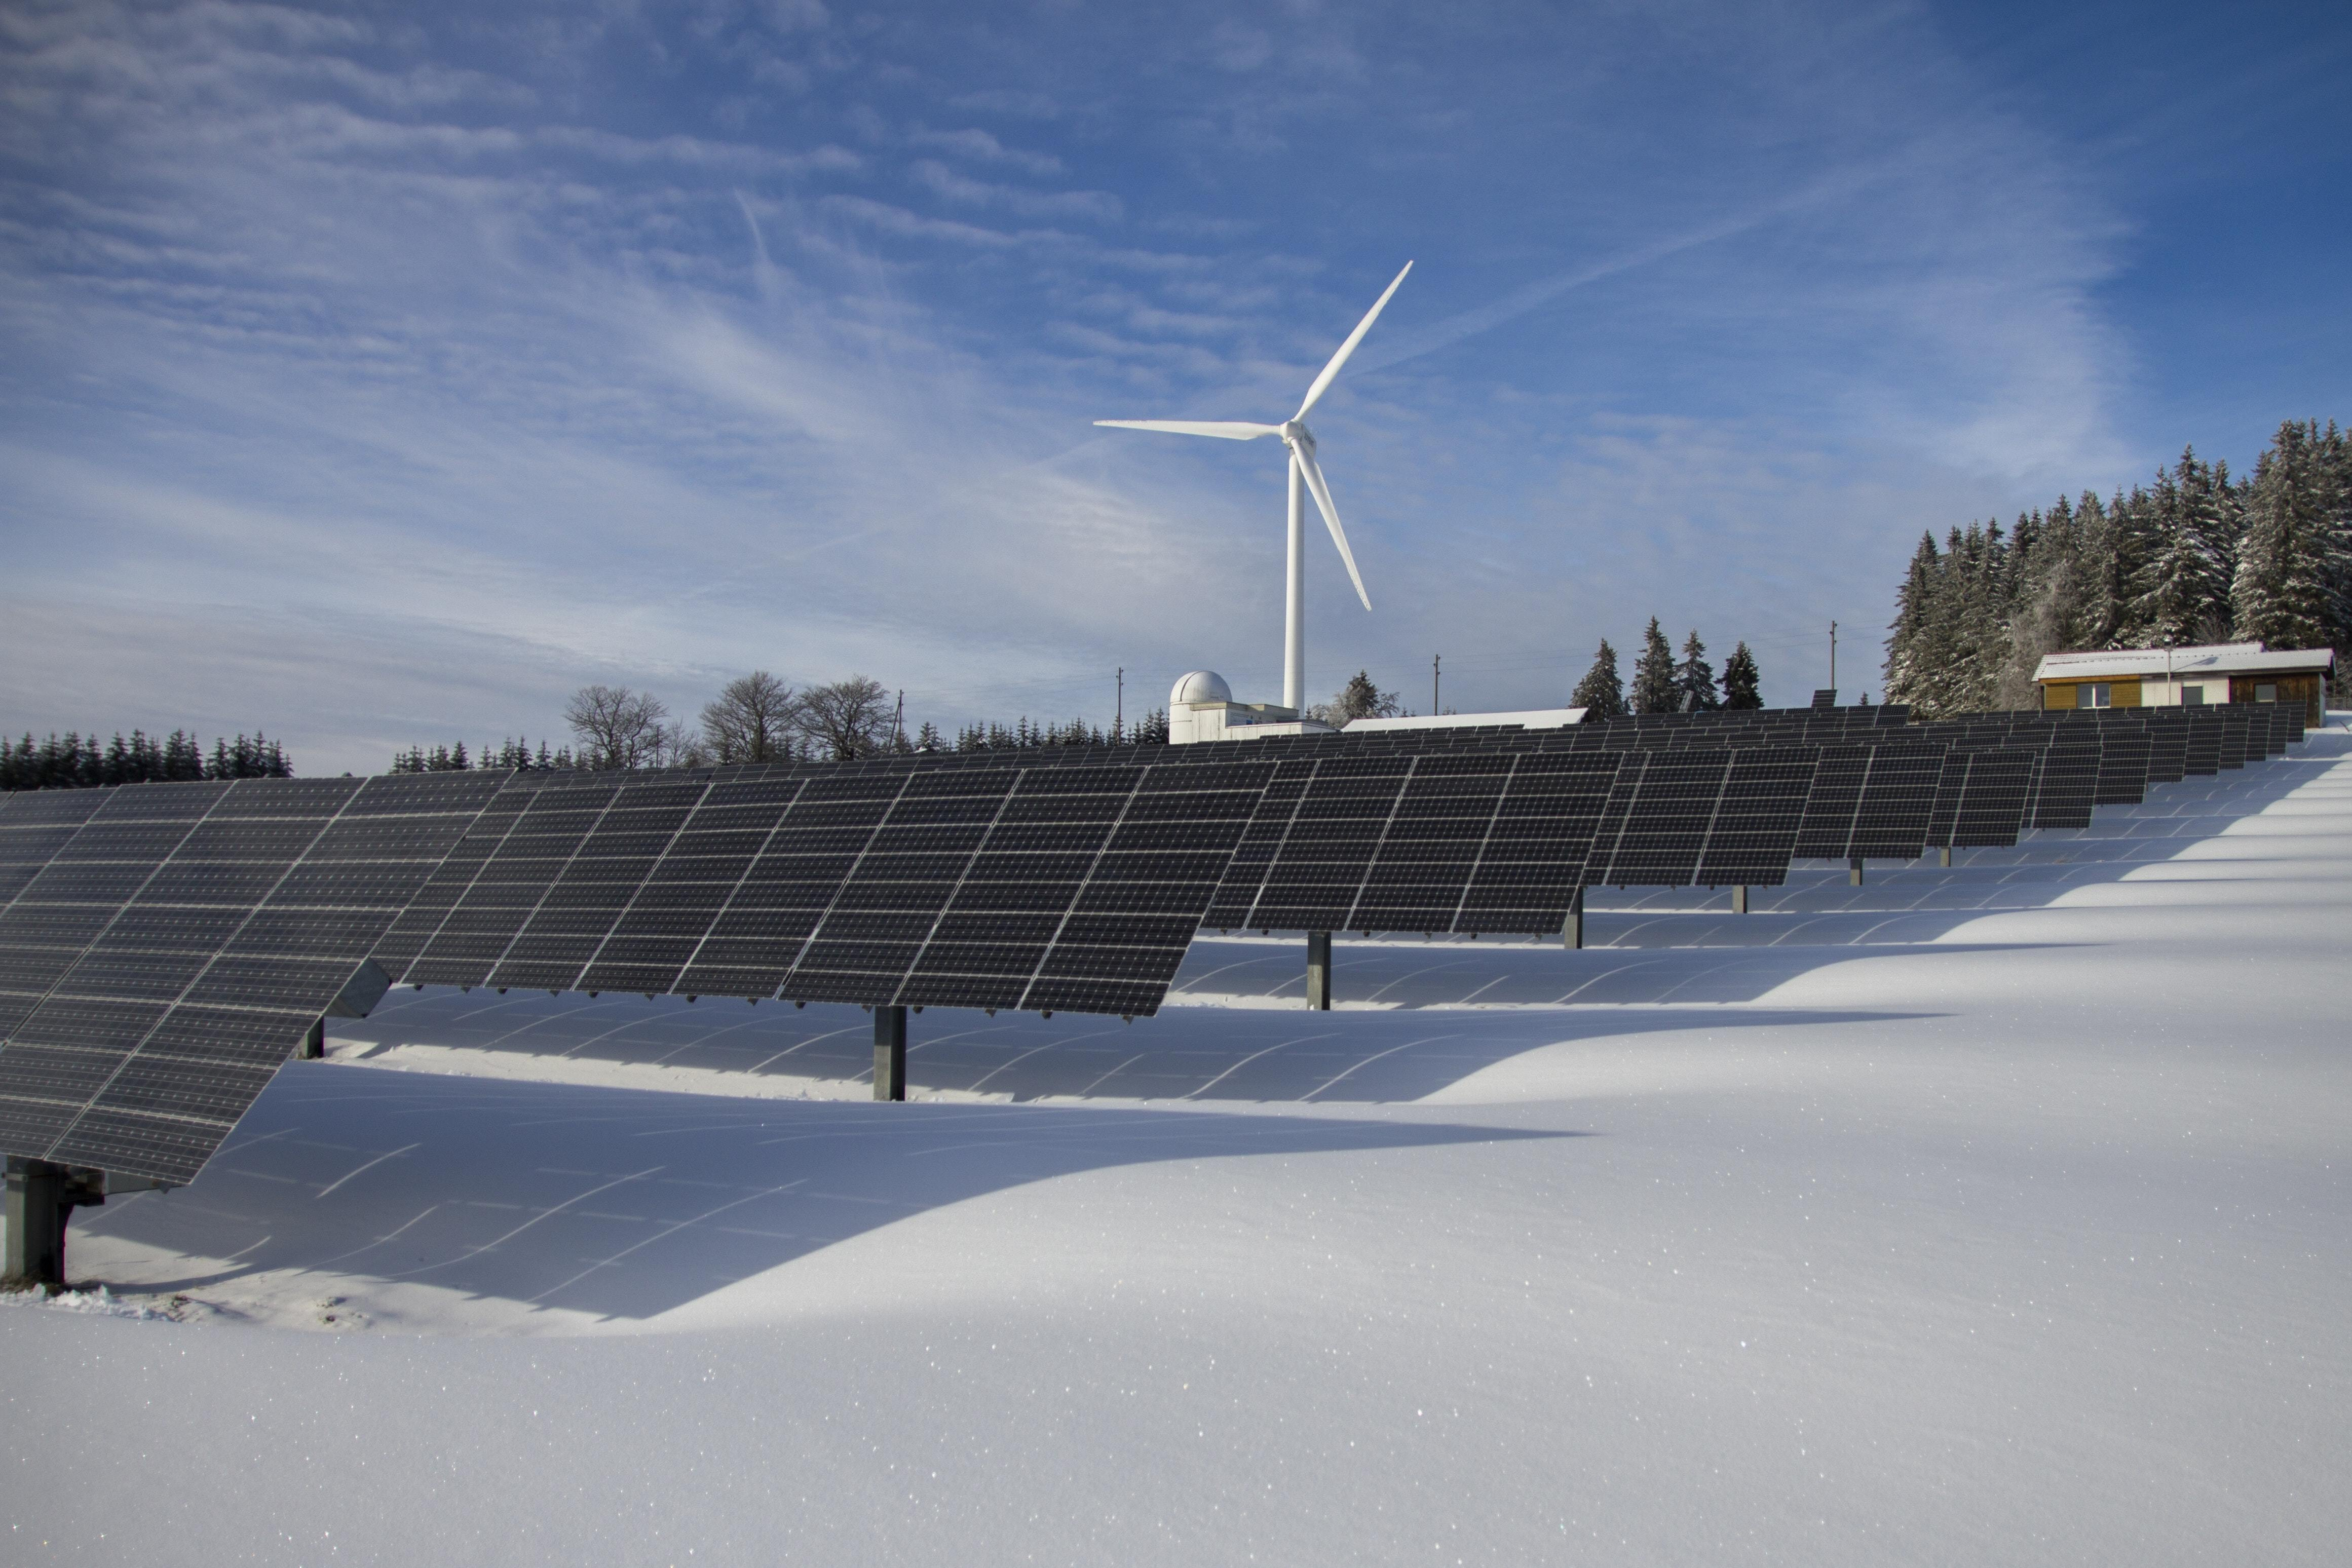 A snow-covered farm covered in rows of solar panels. In the background, a windmill.